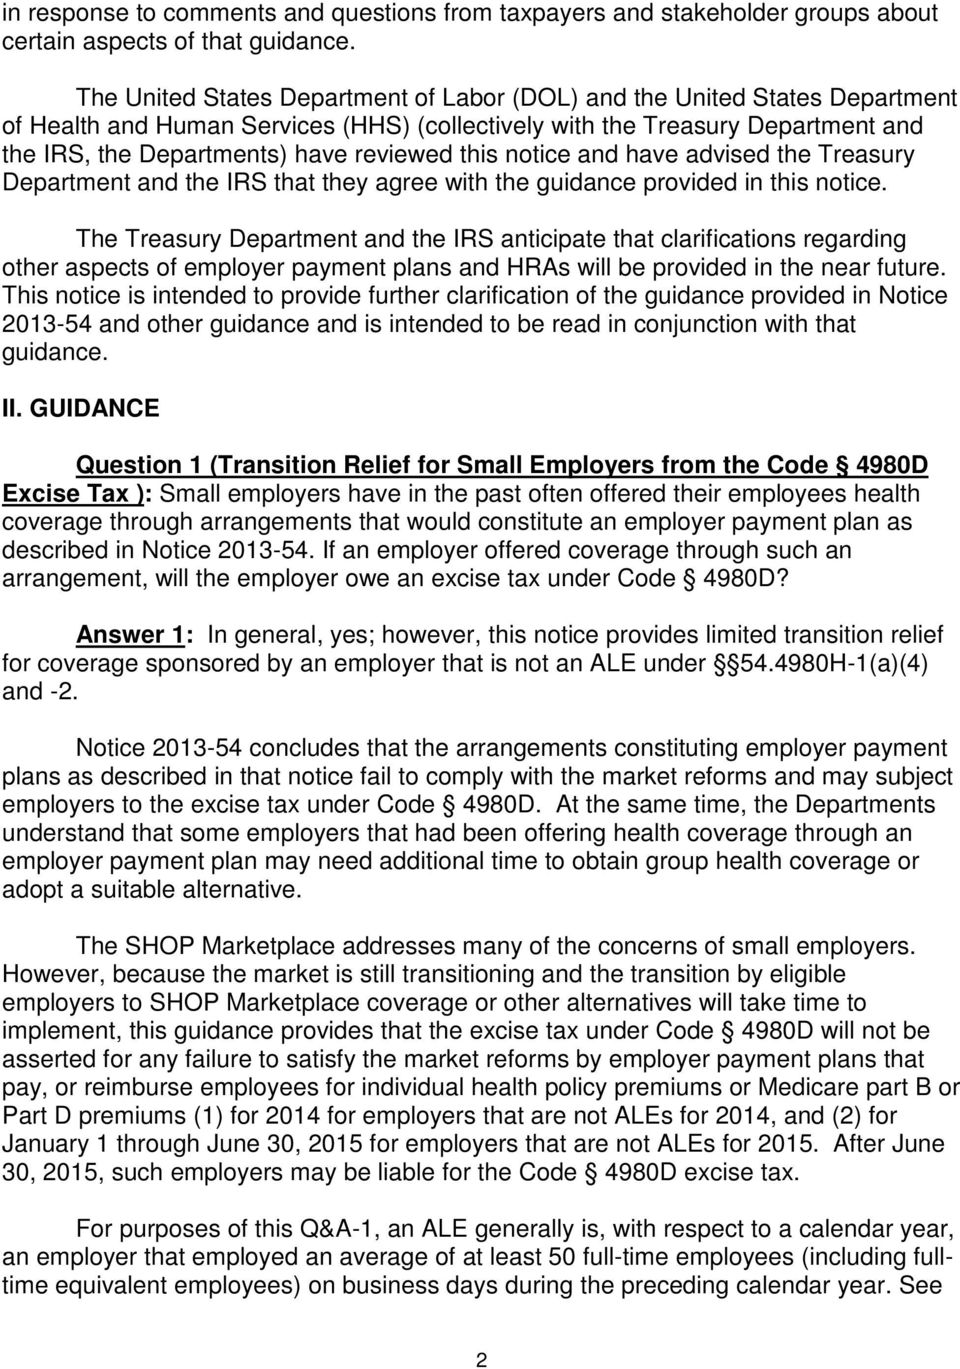 this notice and have advised the Treasury Department and the IRS that they agree with the guidance provided in this notice.